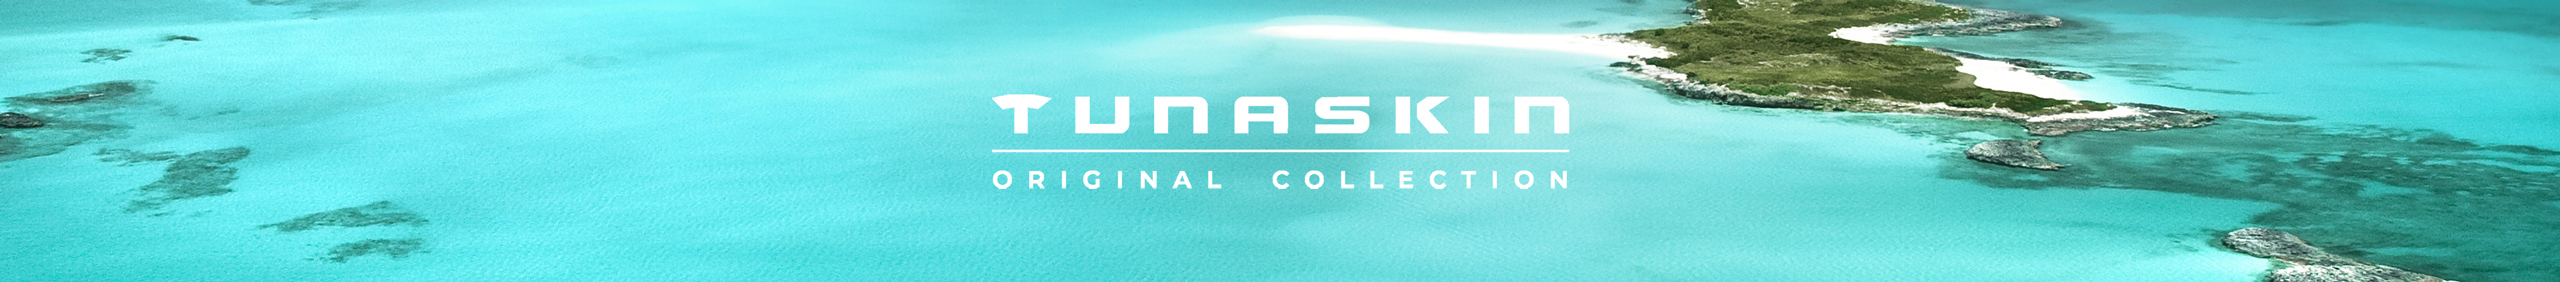 Tunaskin Original Collection Banner